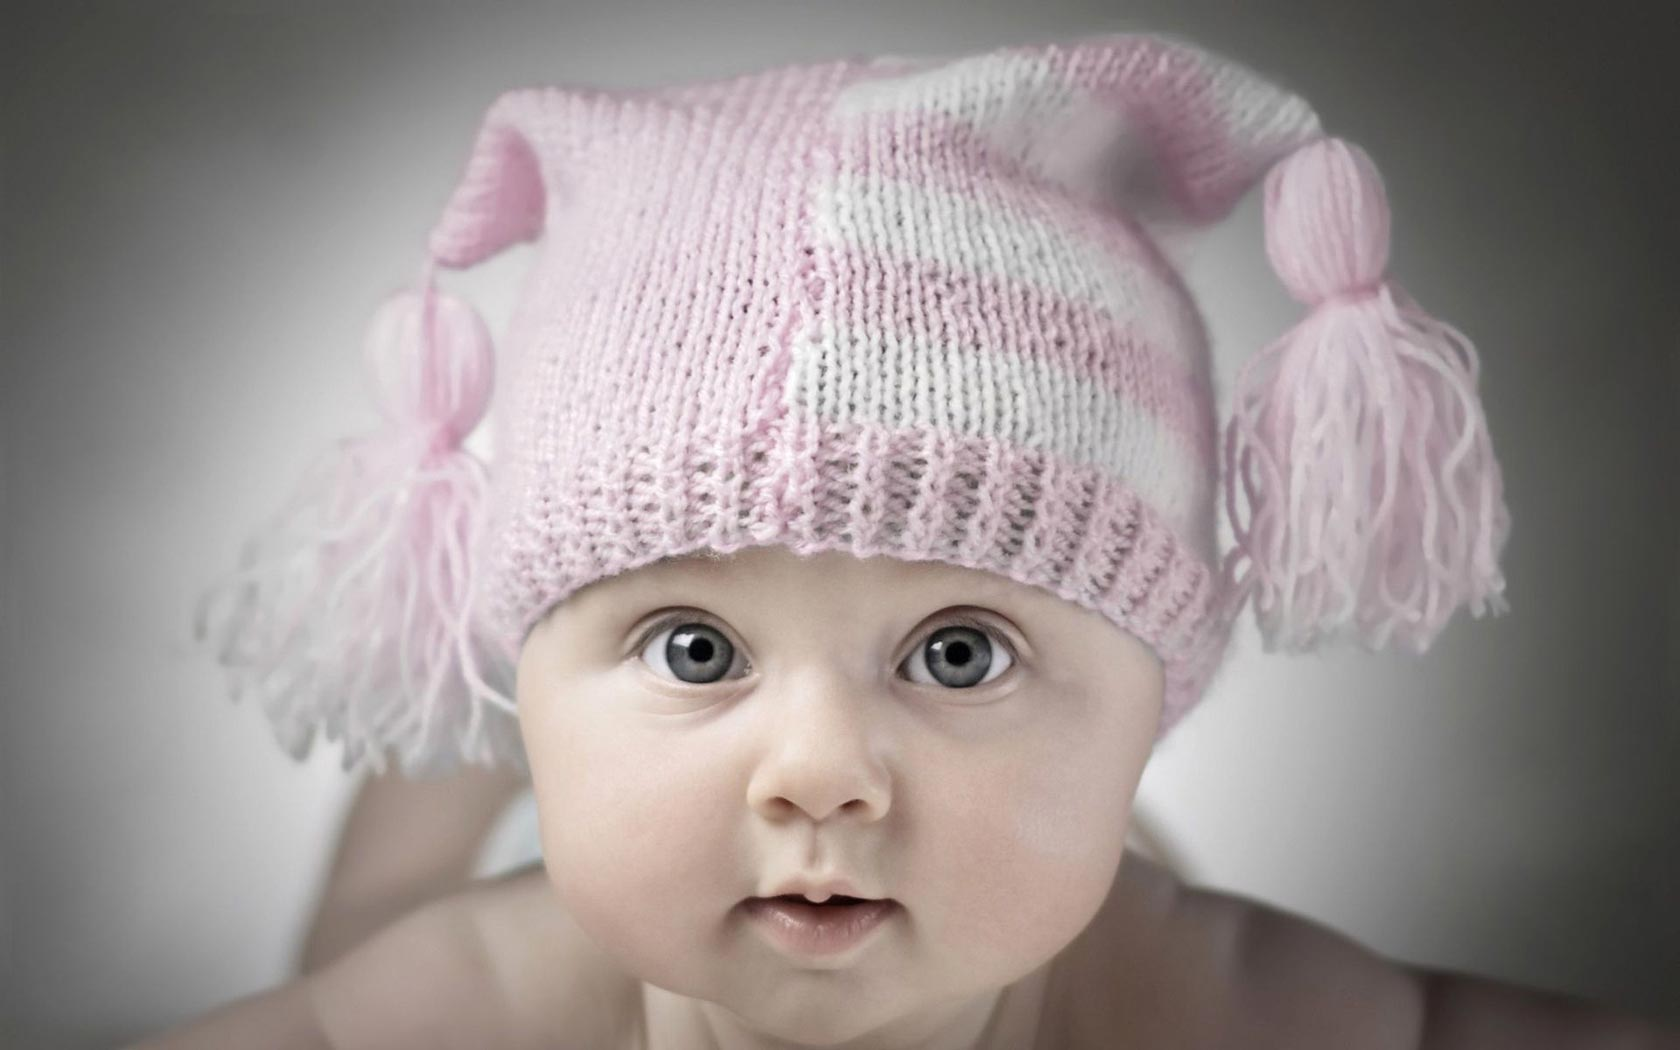 Cute Baby With Hat   HD IPhone Wallpaper | HD Wallpapers Source Wallpaper